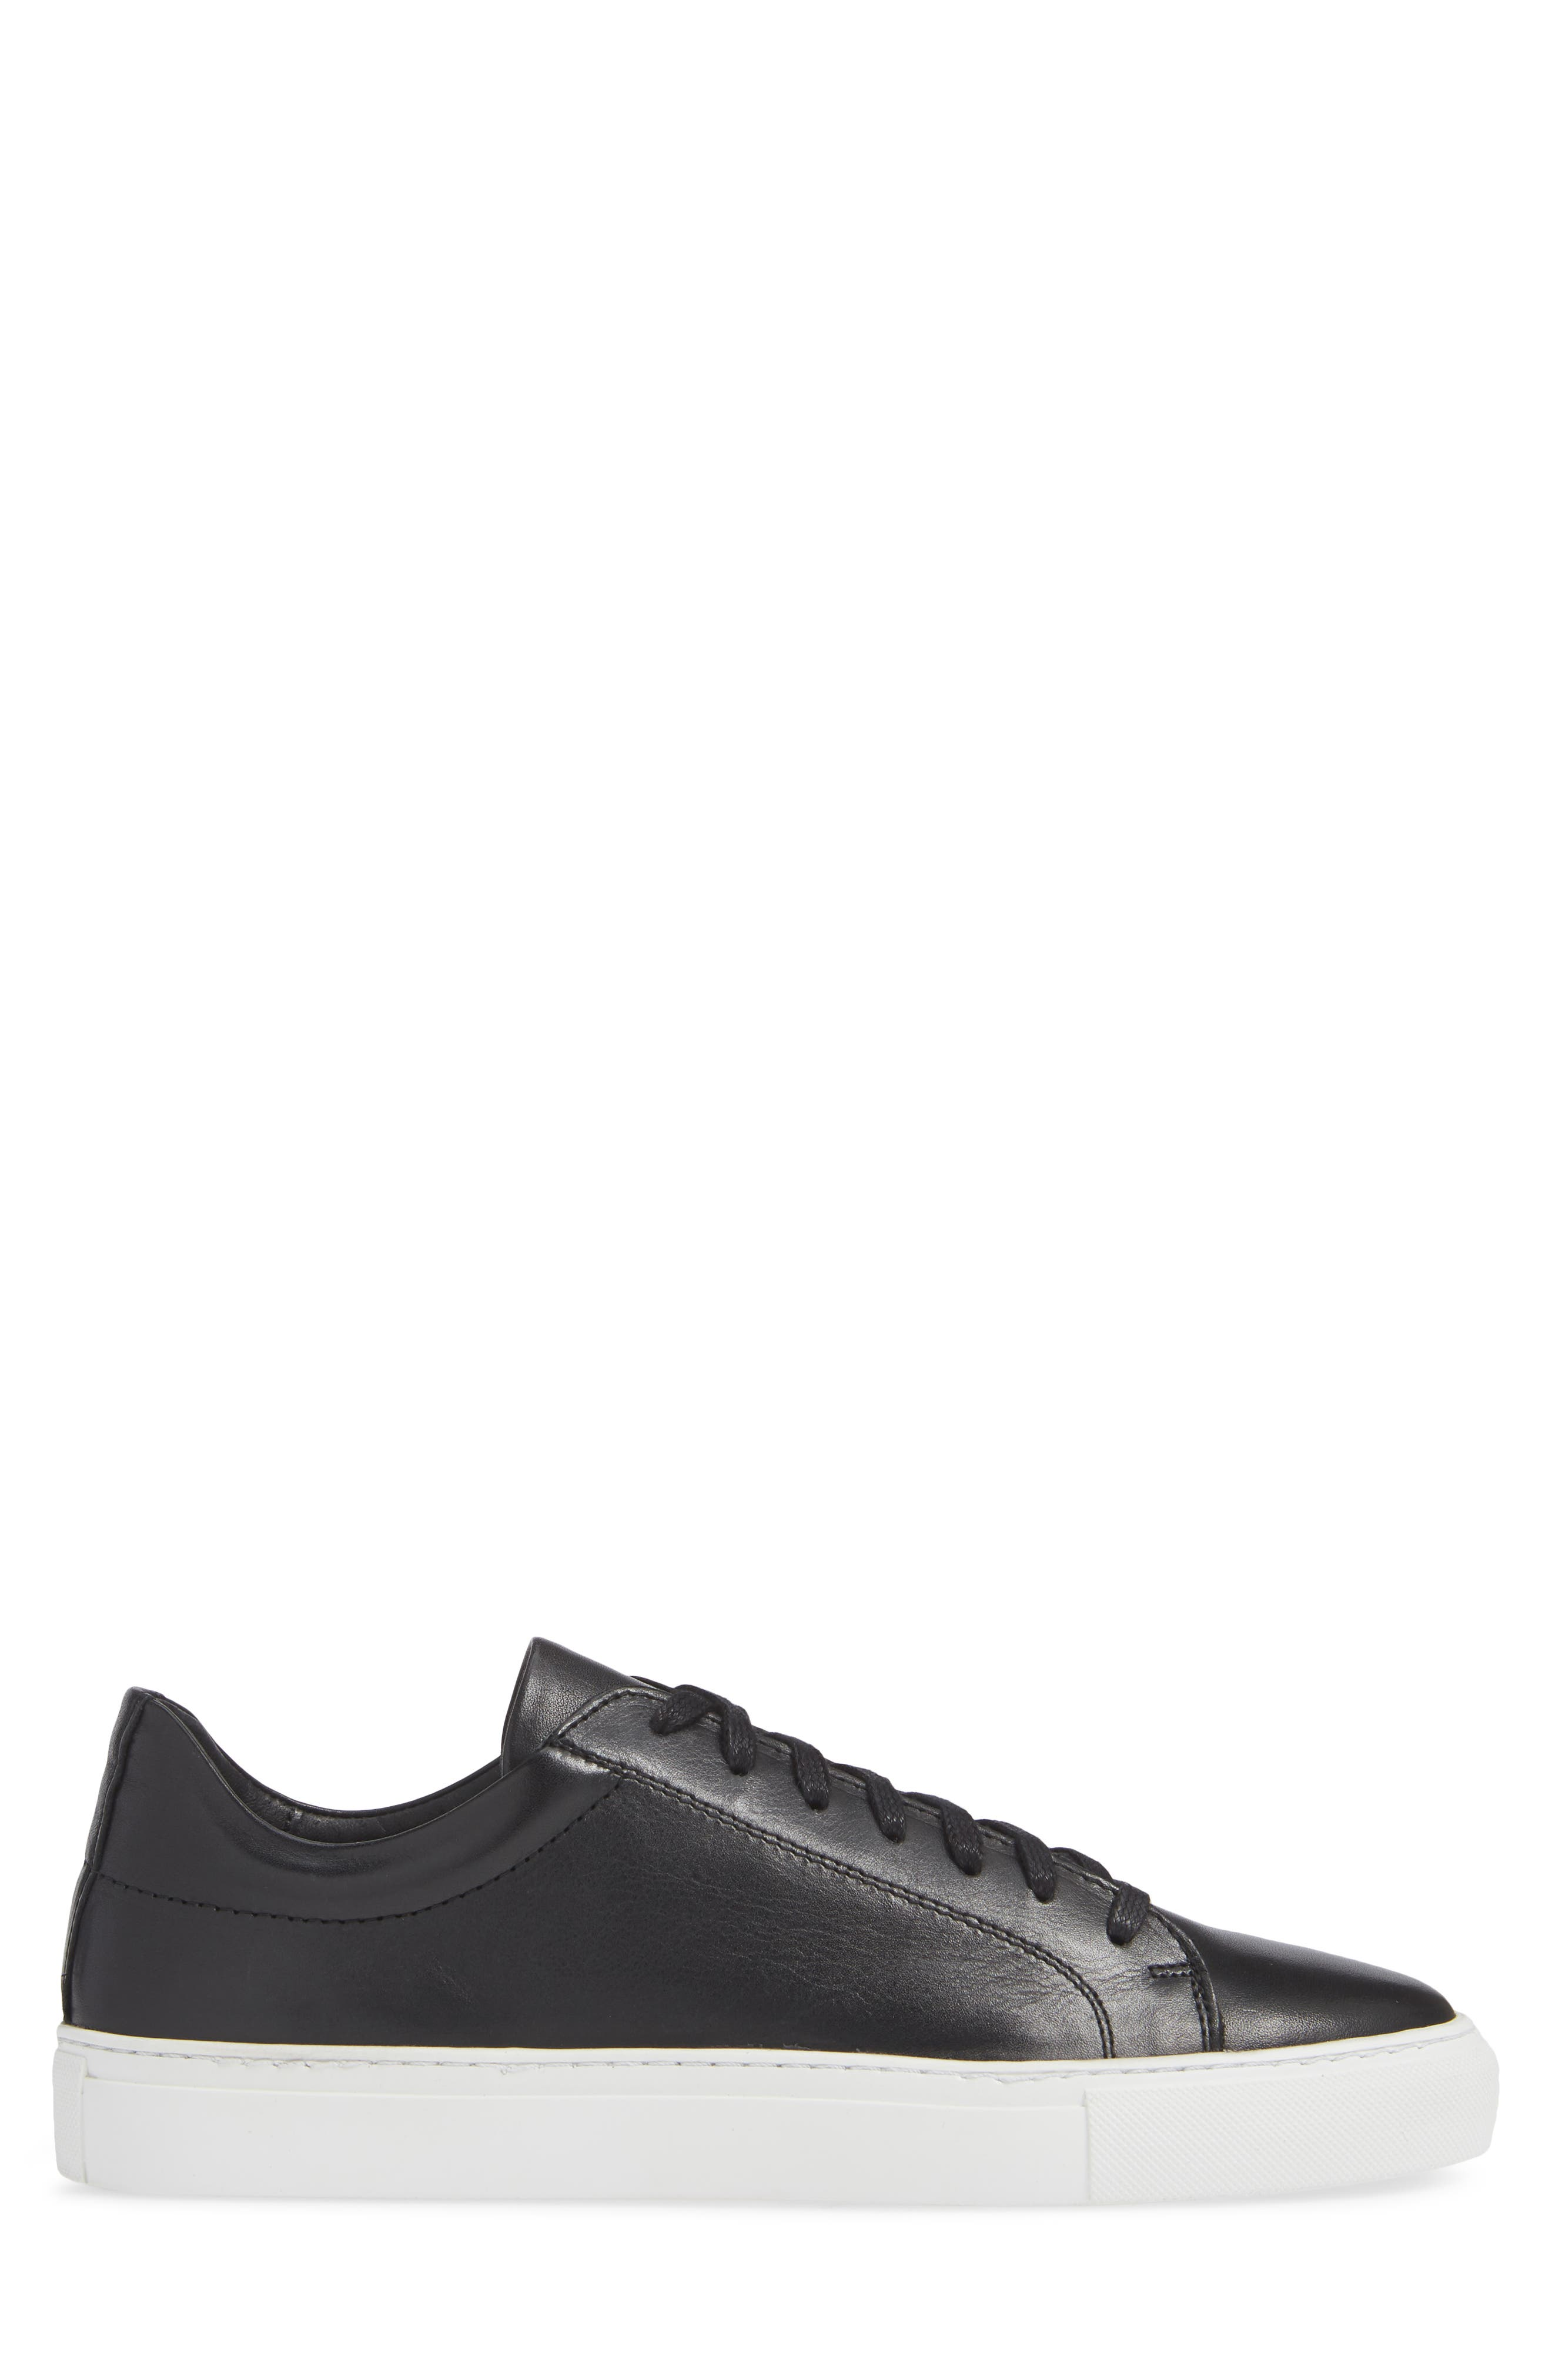 Damian Lace-Up Sneaker,                             Alternate thumbnail 3, color,                             001